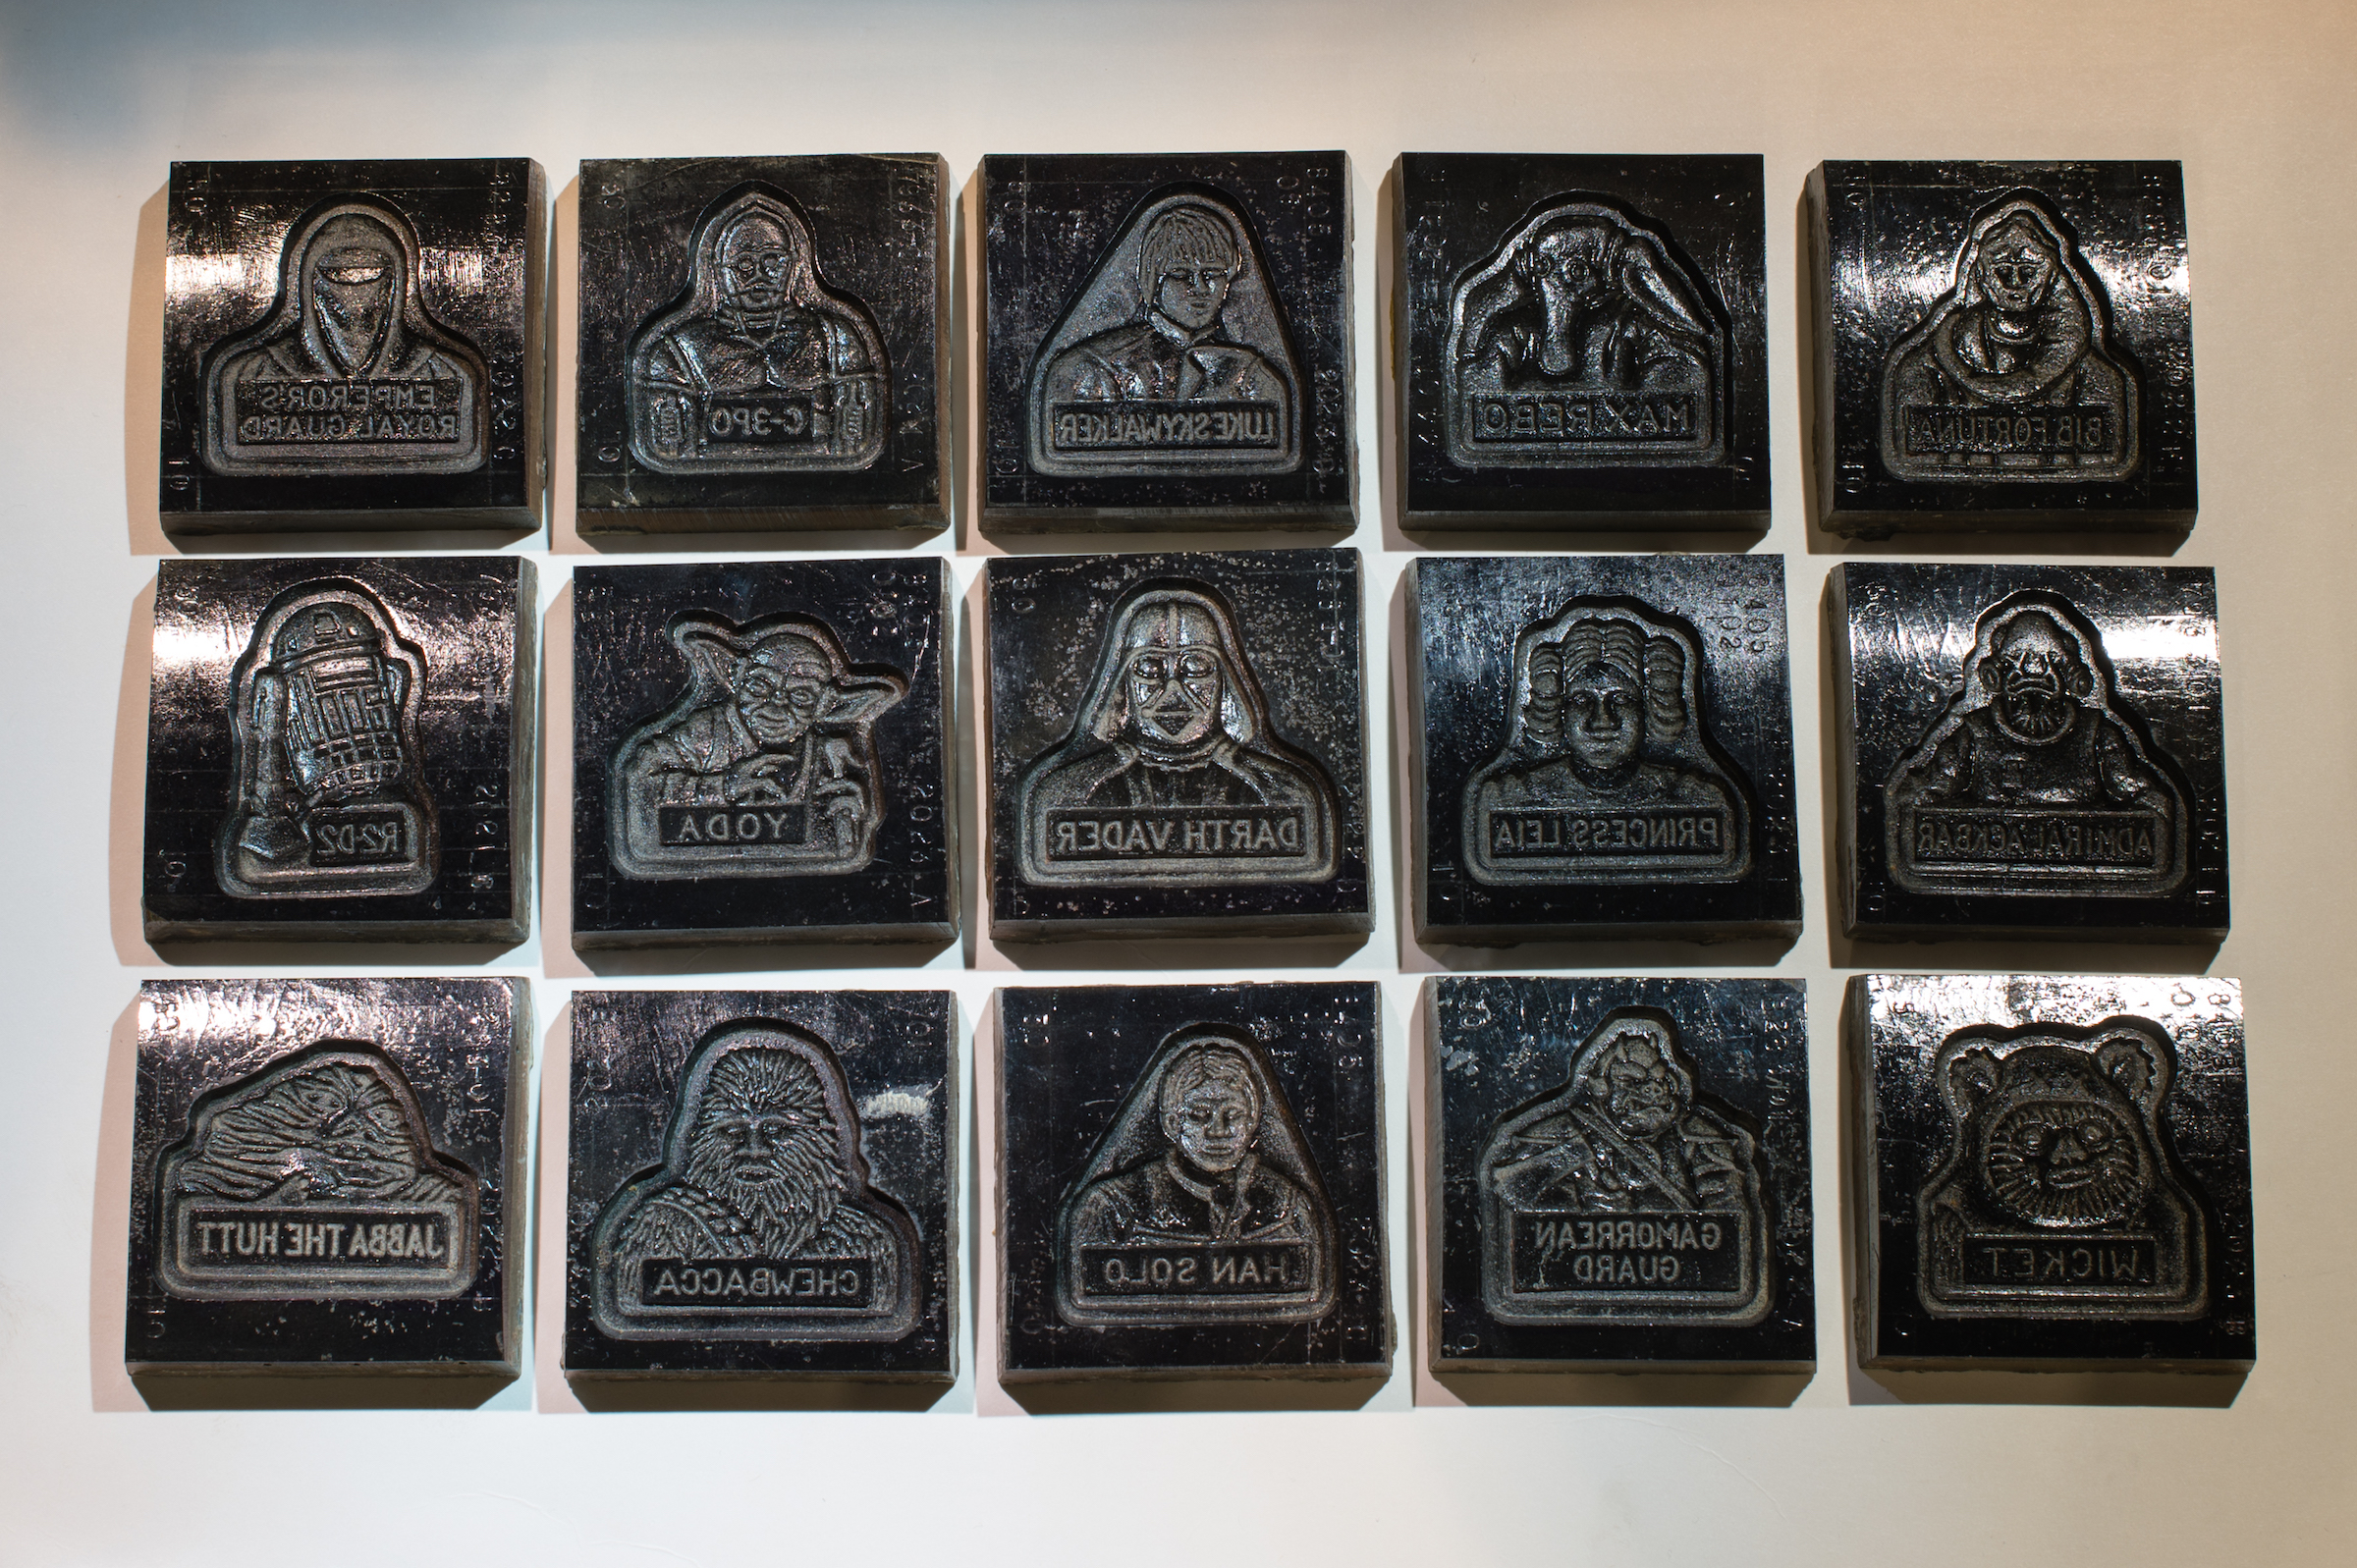 Cookie molds depicting various characters from Star Wars